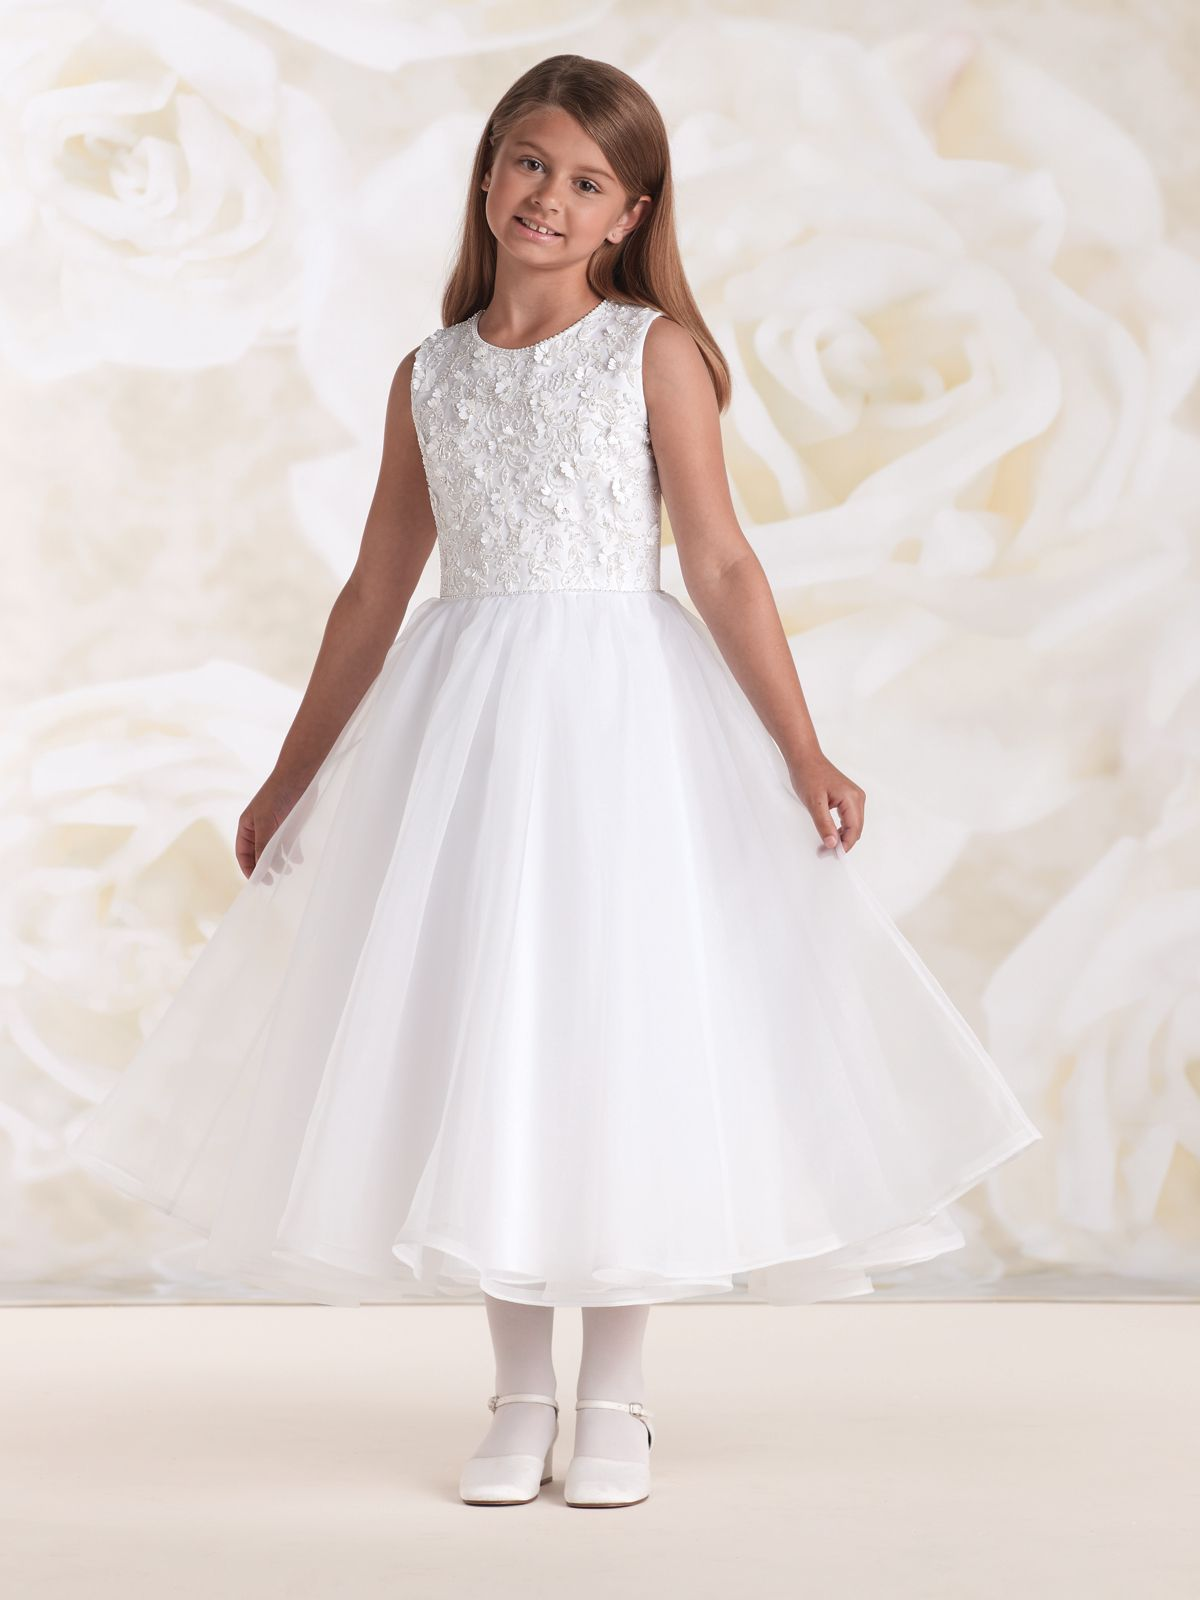 115305 Sleeveless Satin And Organza Tea Length A Line Dress With Delicately Hand Beaded J White Flower Girl Dresses Flower Girl Dresses First Communion Dresses [ 1600 x 1200 Pixel ]